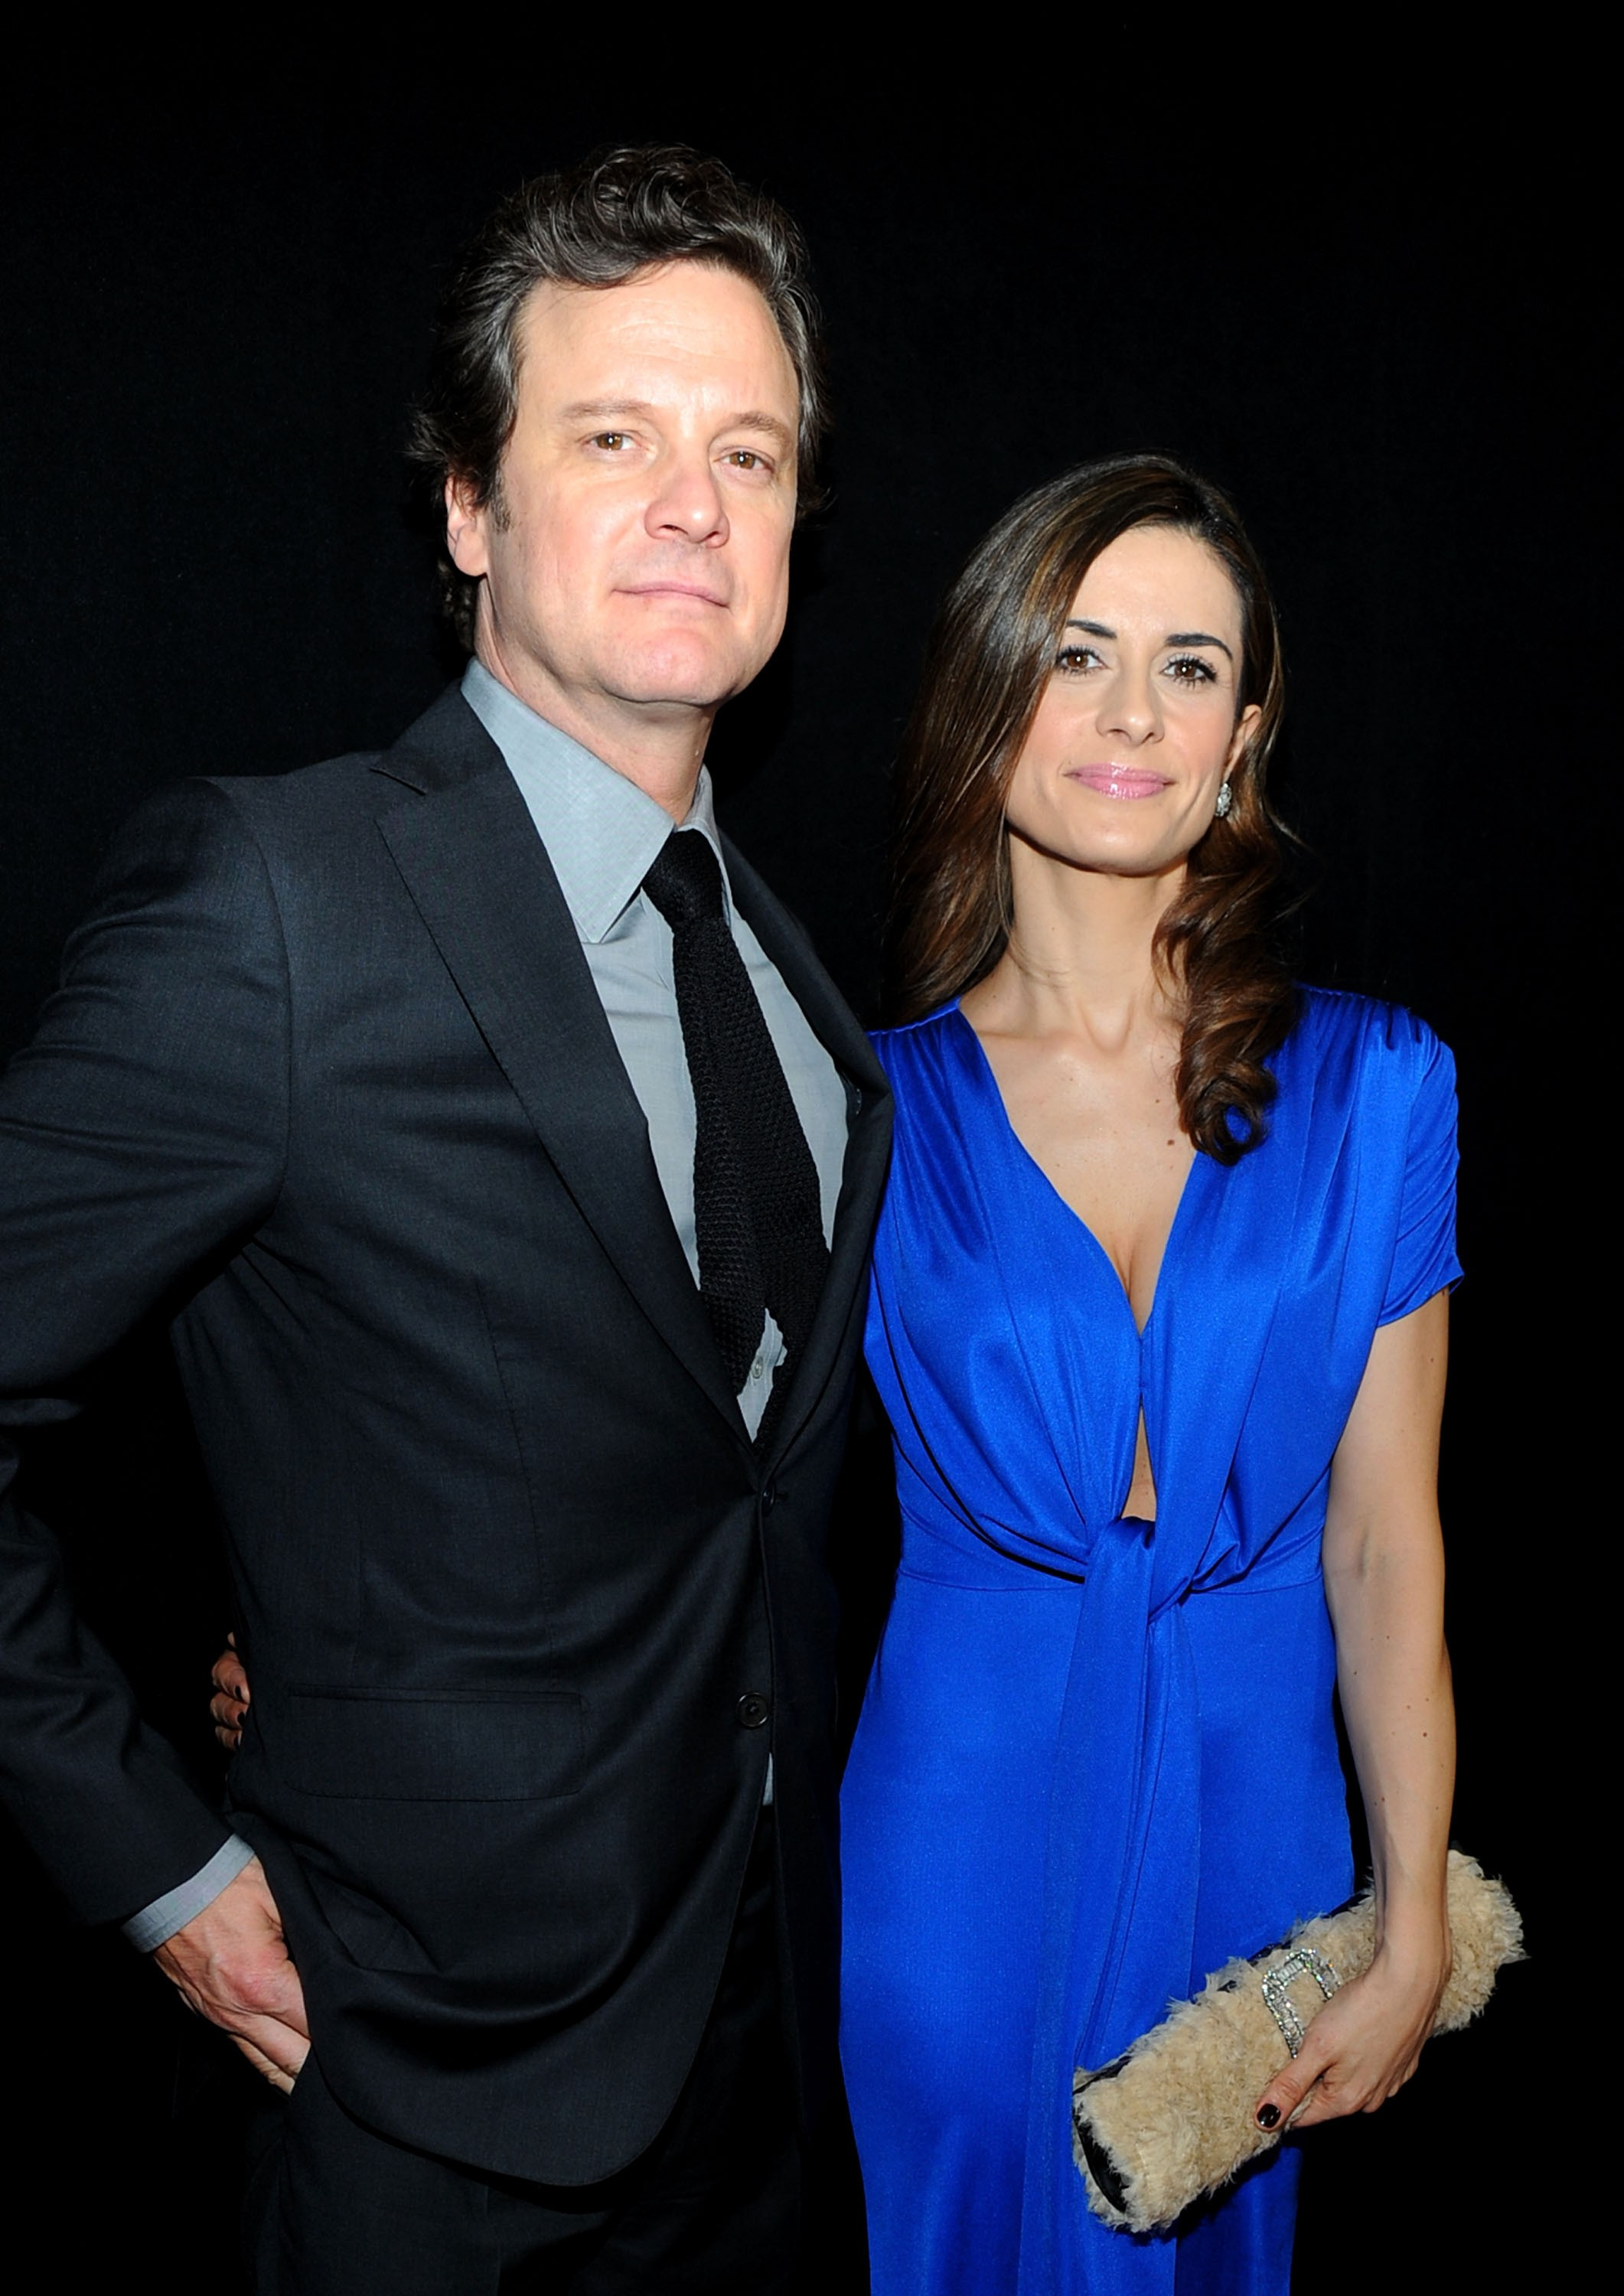 O ator Colin Firth e a produtora de cinema Livia Giuggioli (Foto: Getty Images)